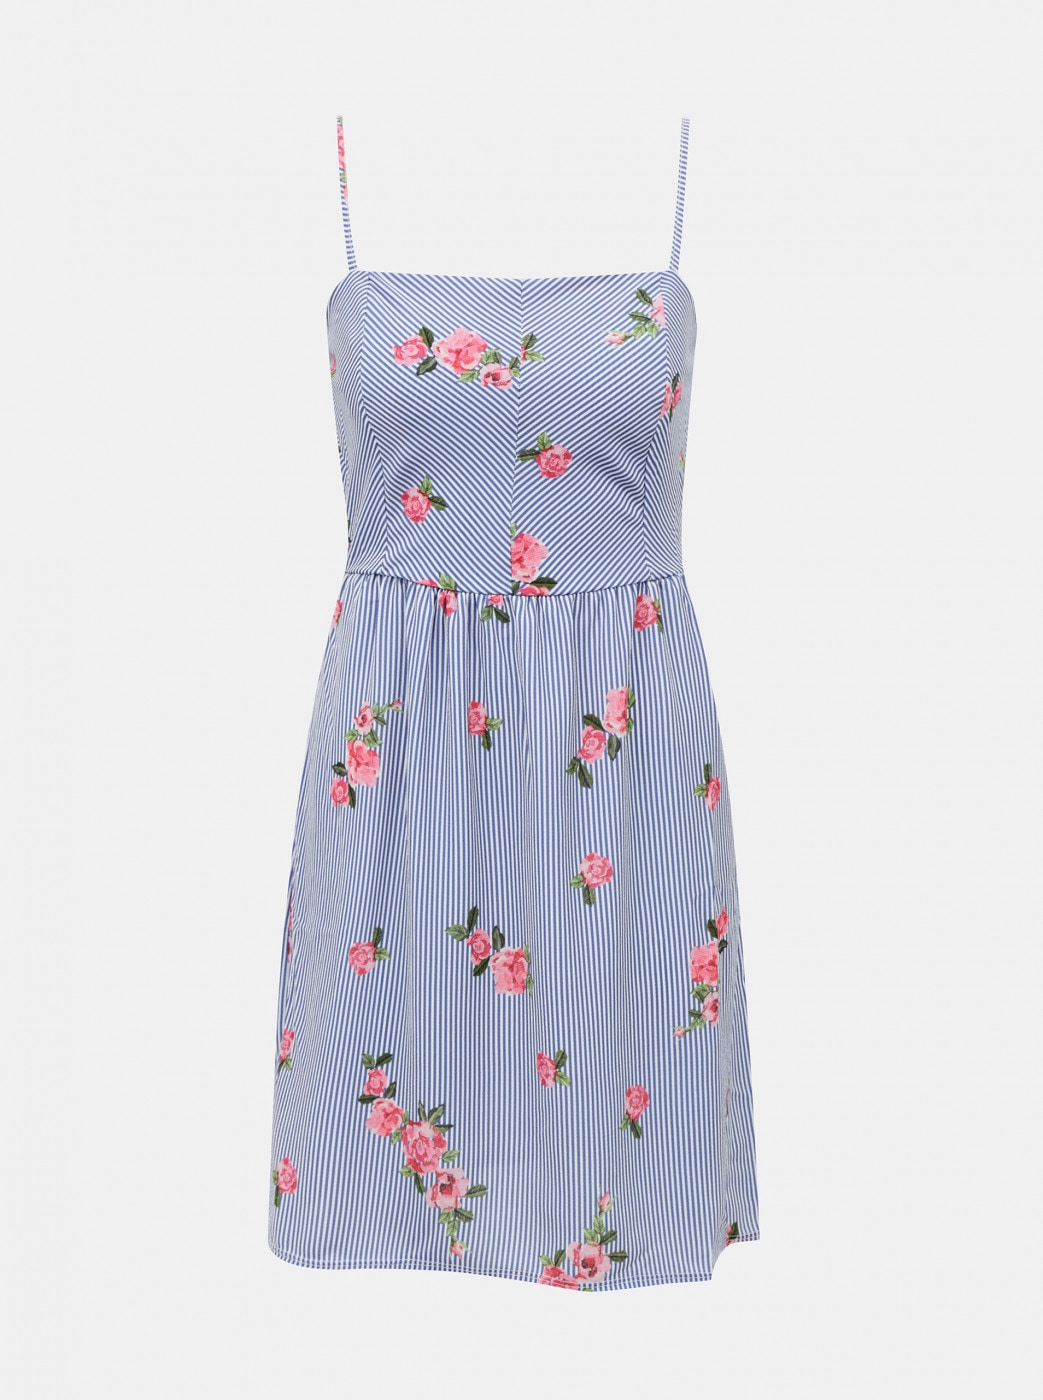 Haily's Rose Blue Floral Dress